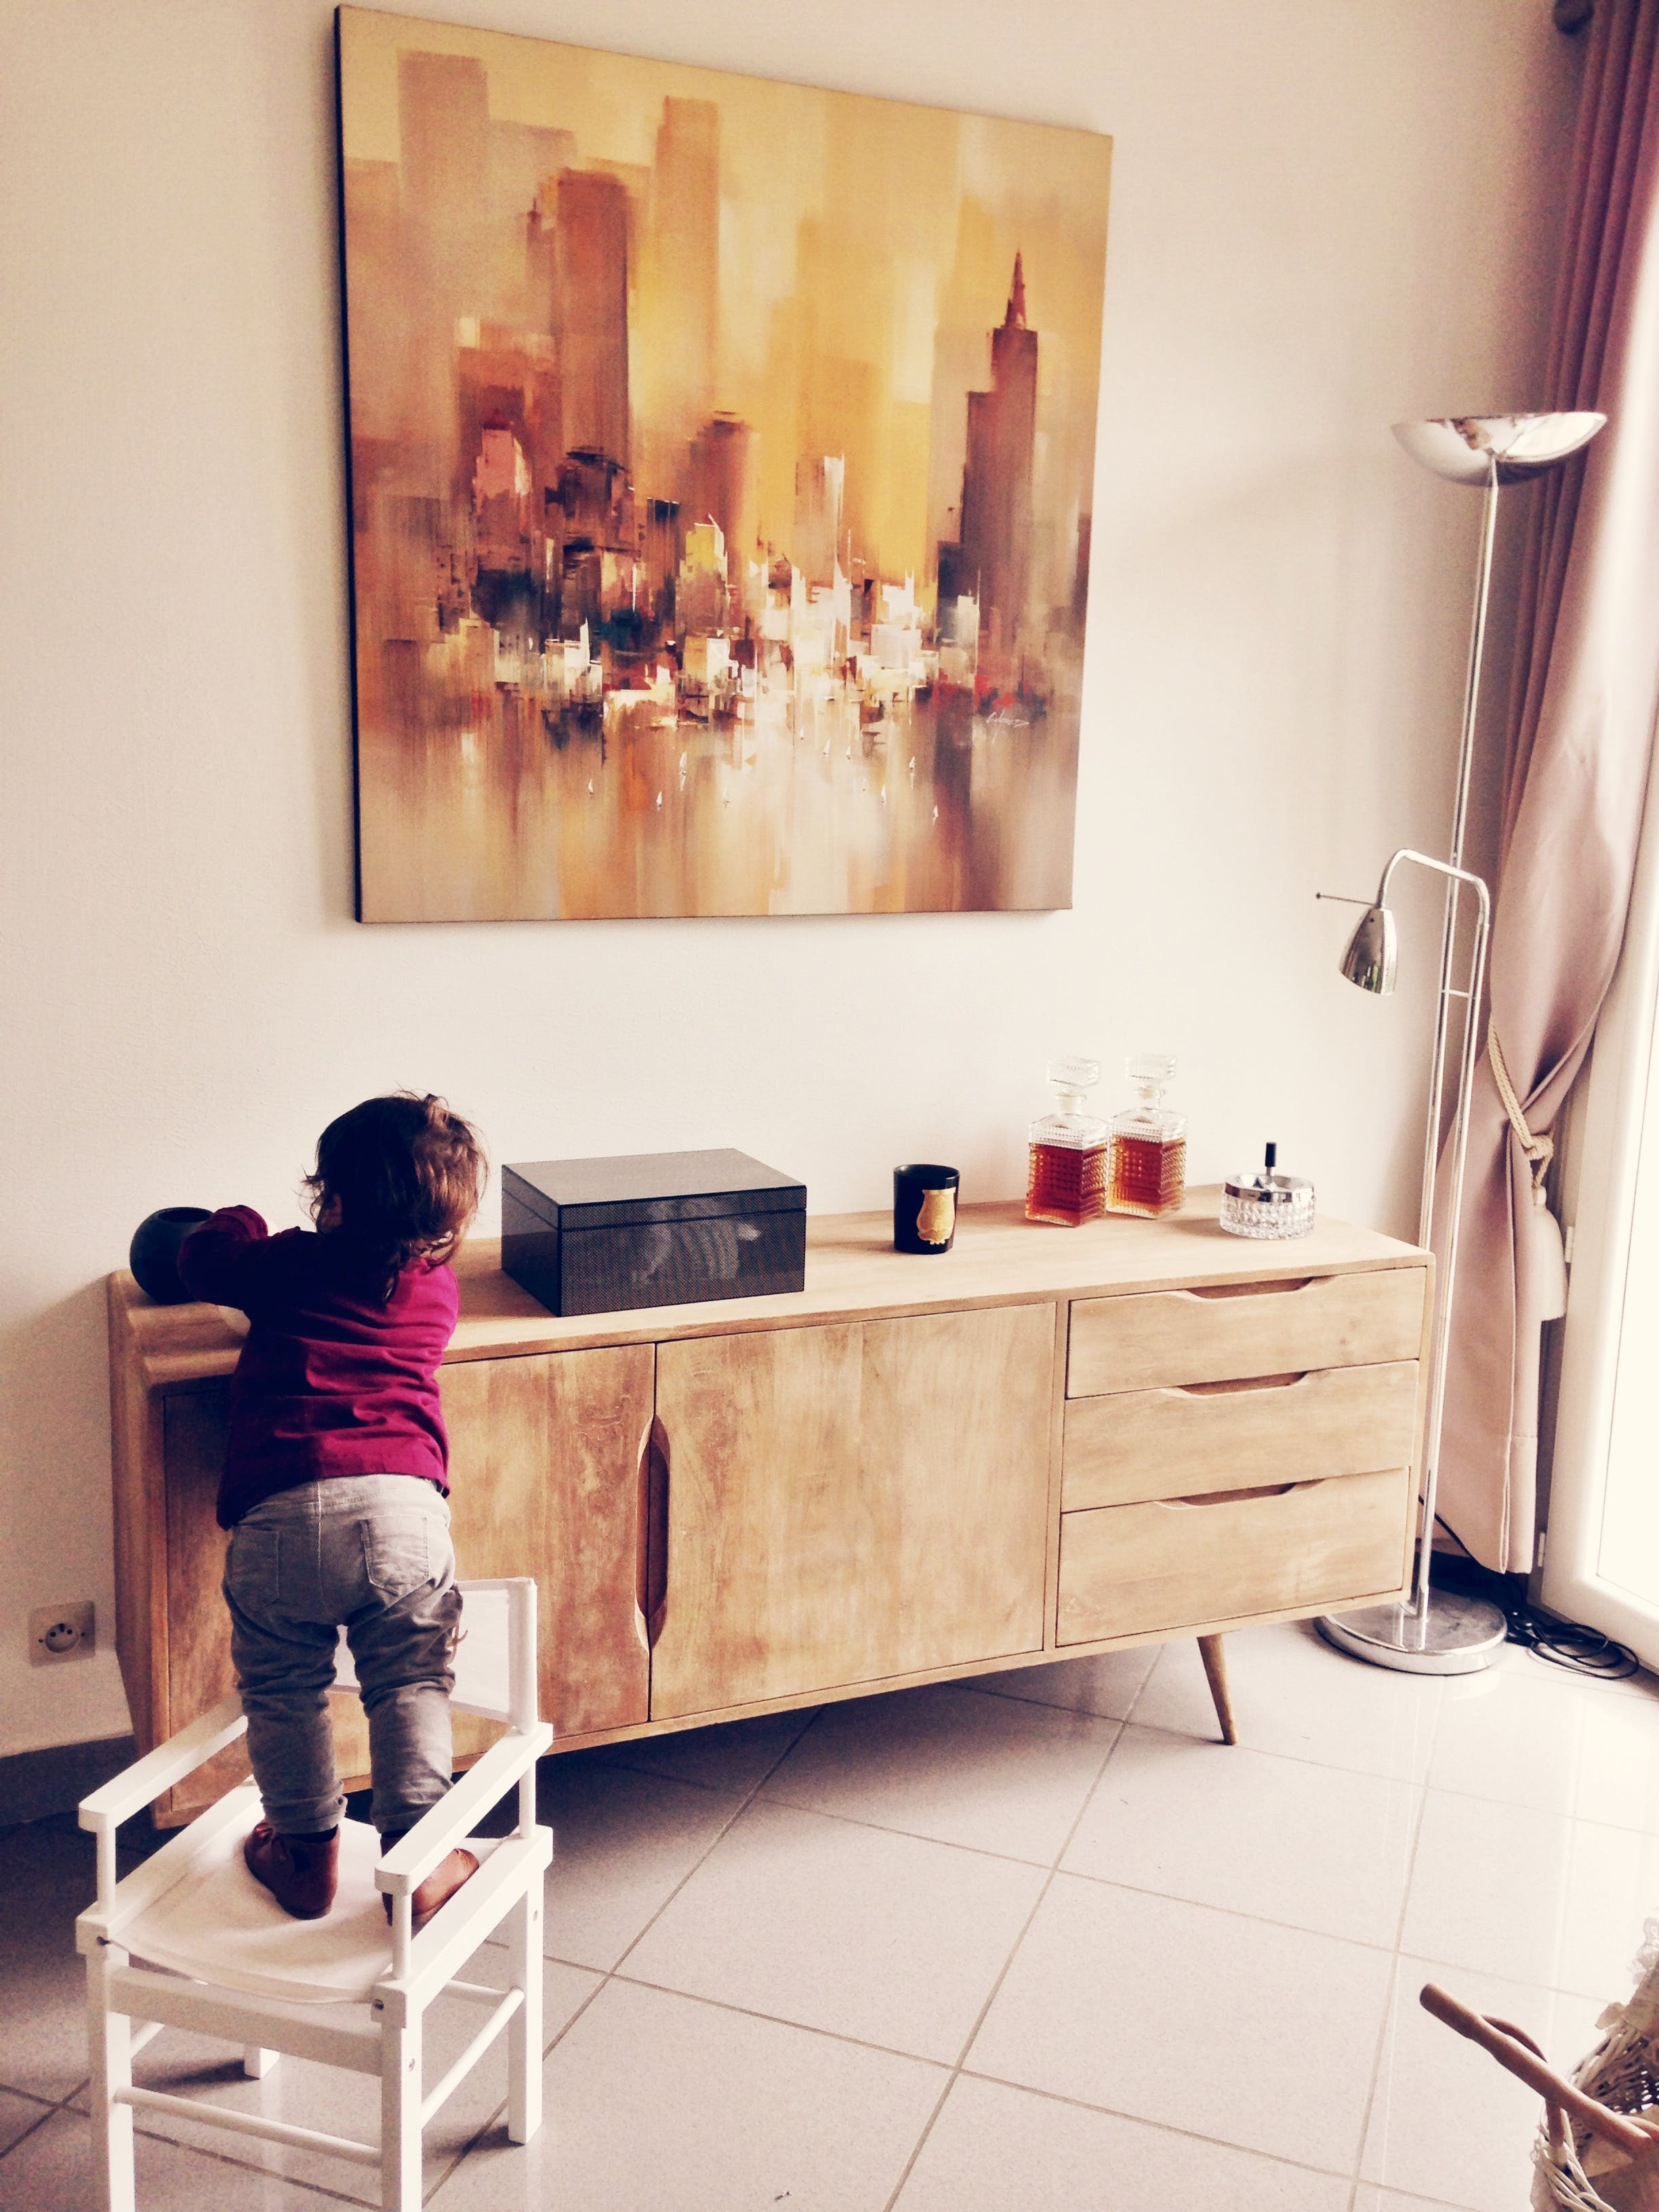 Toddler Standing on White Chair Beside Sideboard